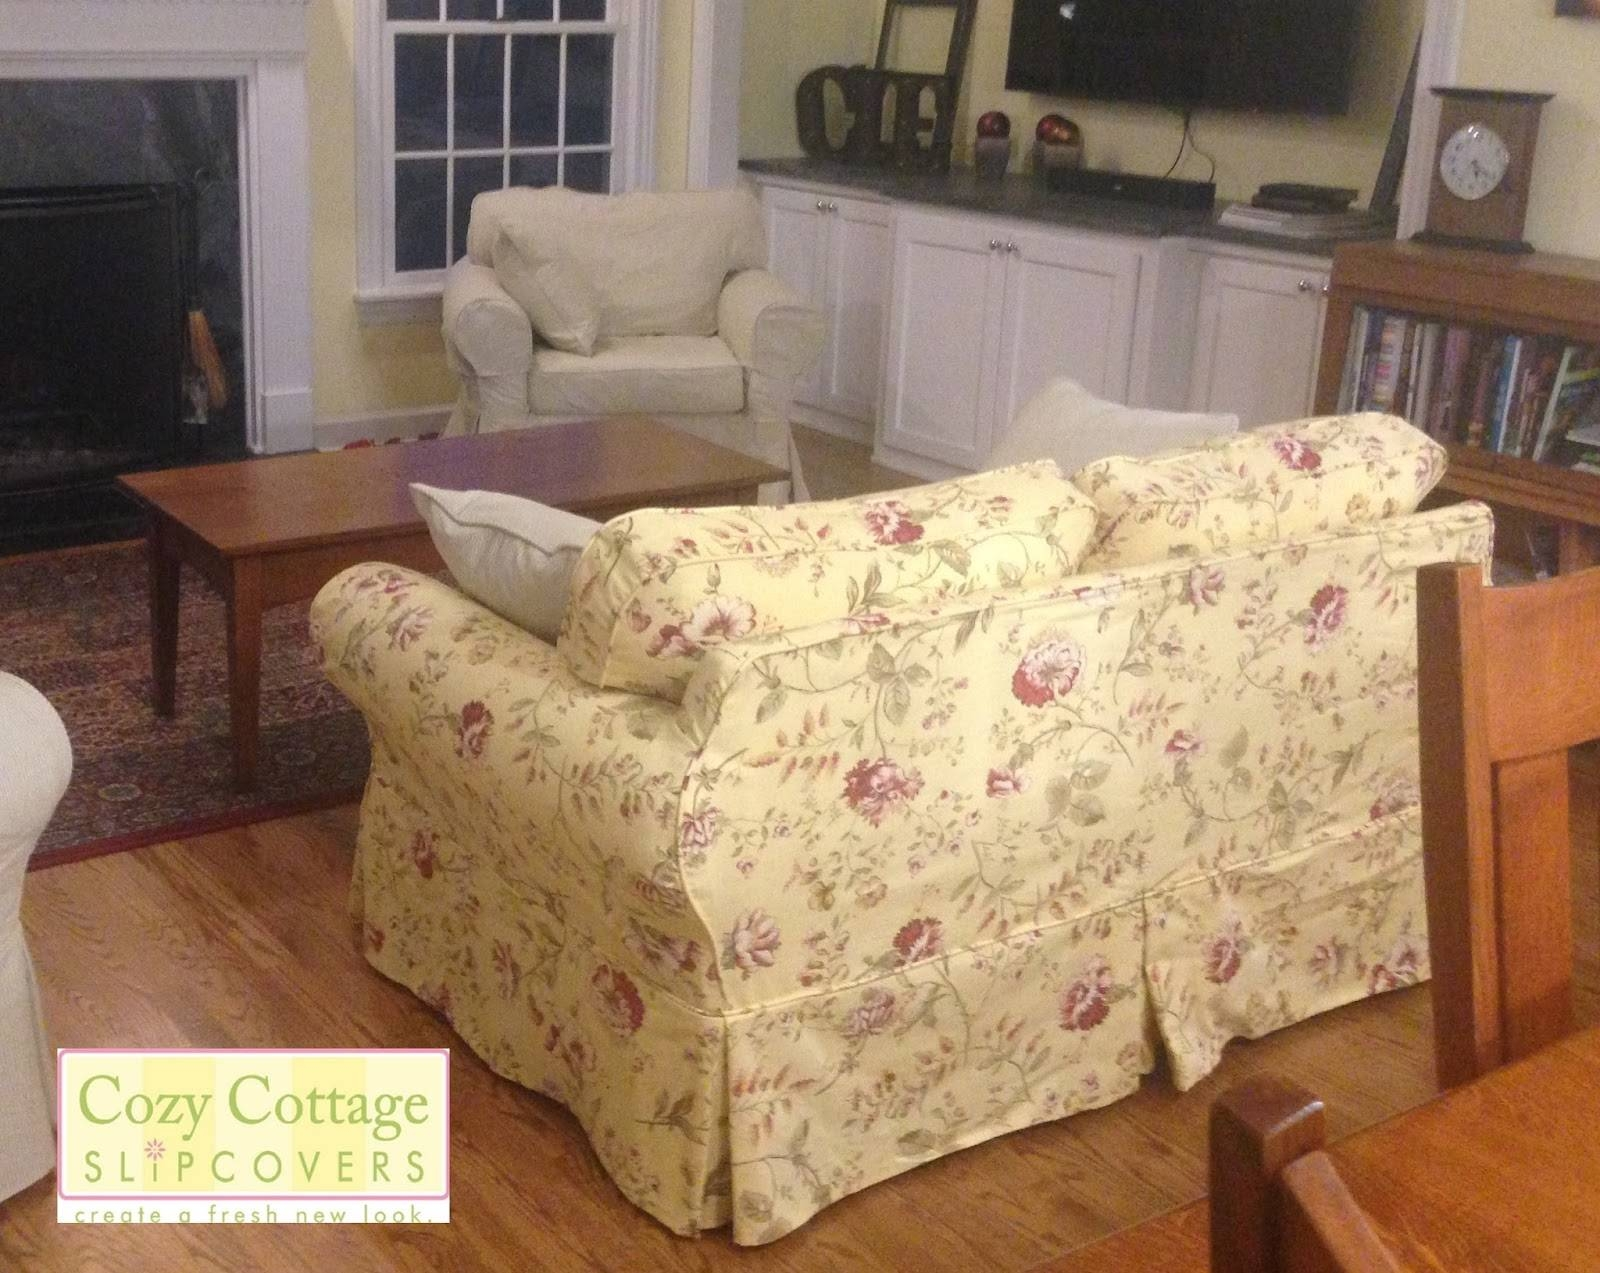 Cozy Cottage Slipcovers: Fresh Floral Slipcovers with Floral Slipcovers (Image 3 of 15)